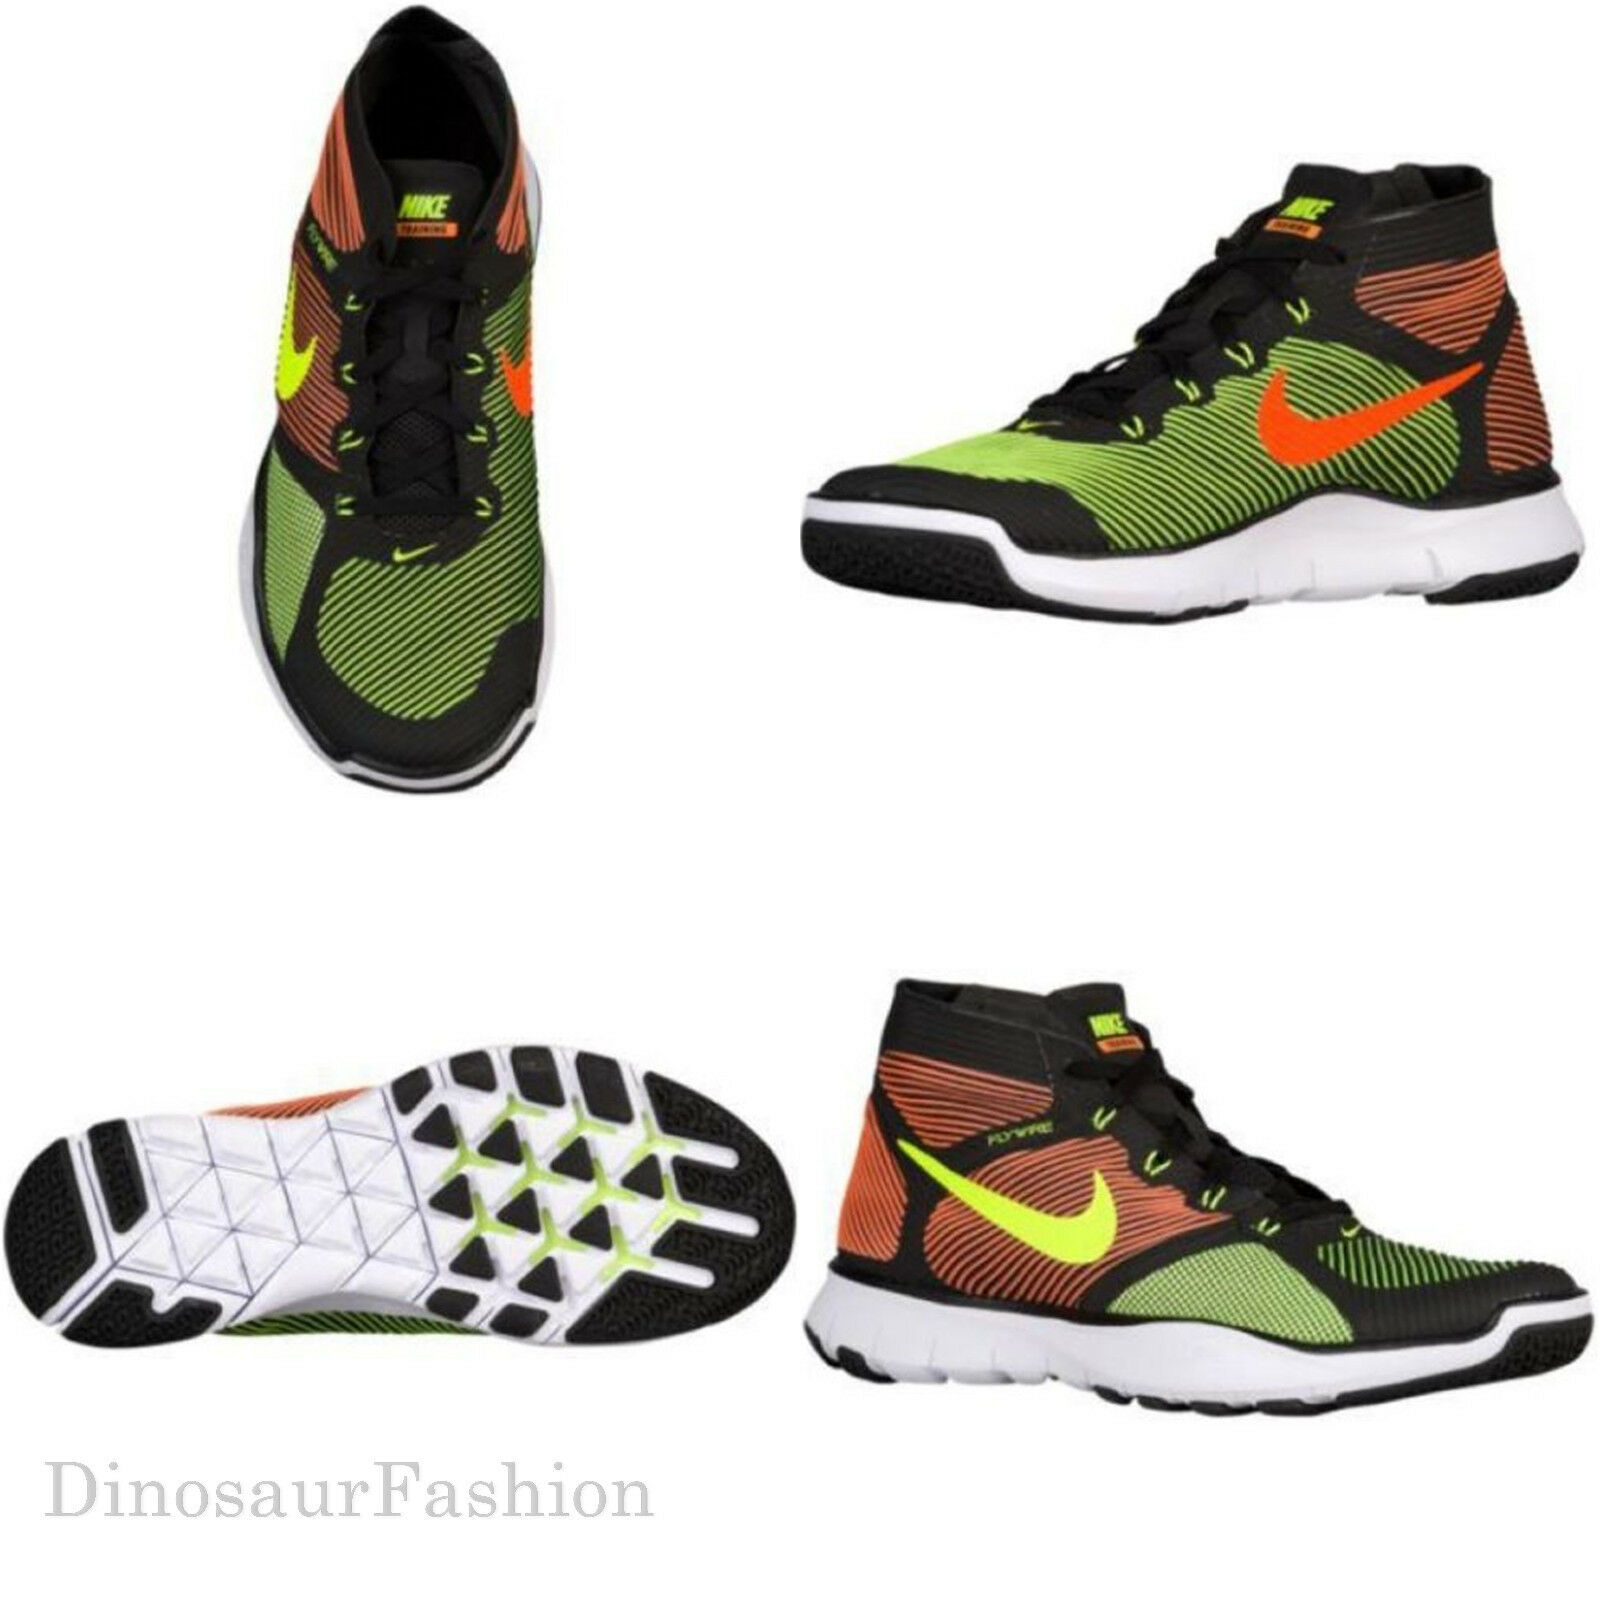 NIKE FREE TRAIN INSTINCT INSTINCT TRAIN (833274-078) , hommes Athletic Sneakers, New with box. 7305c3